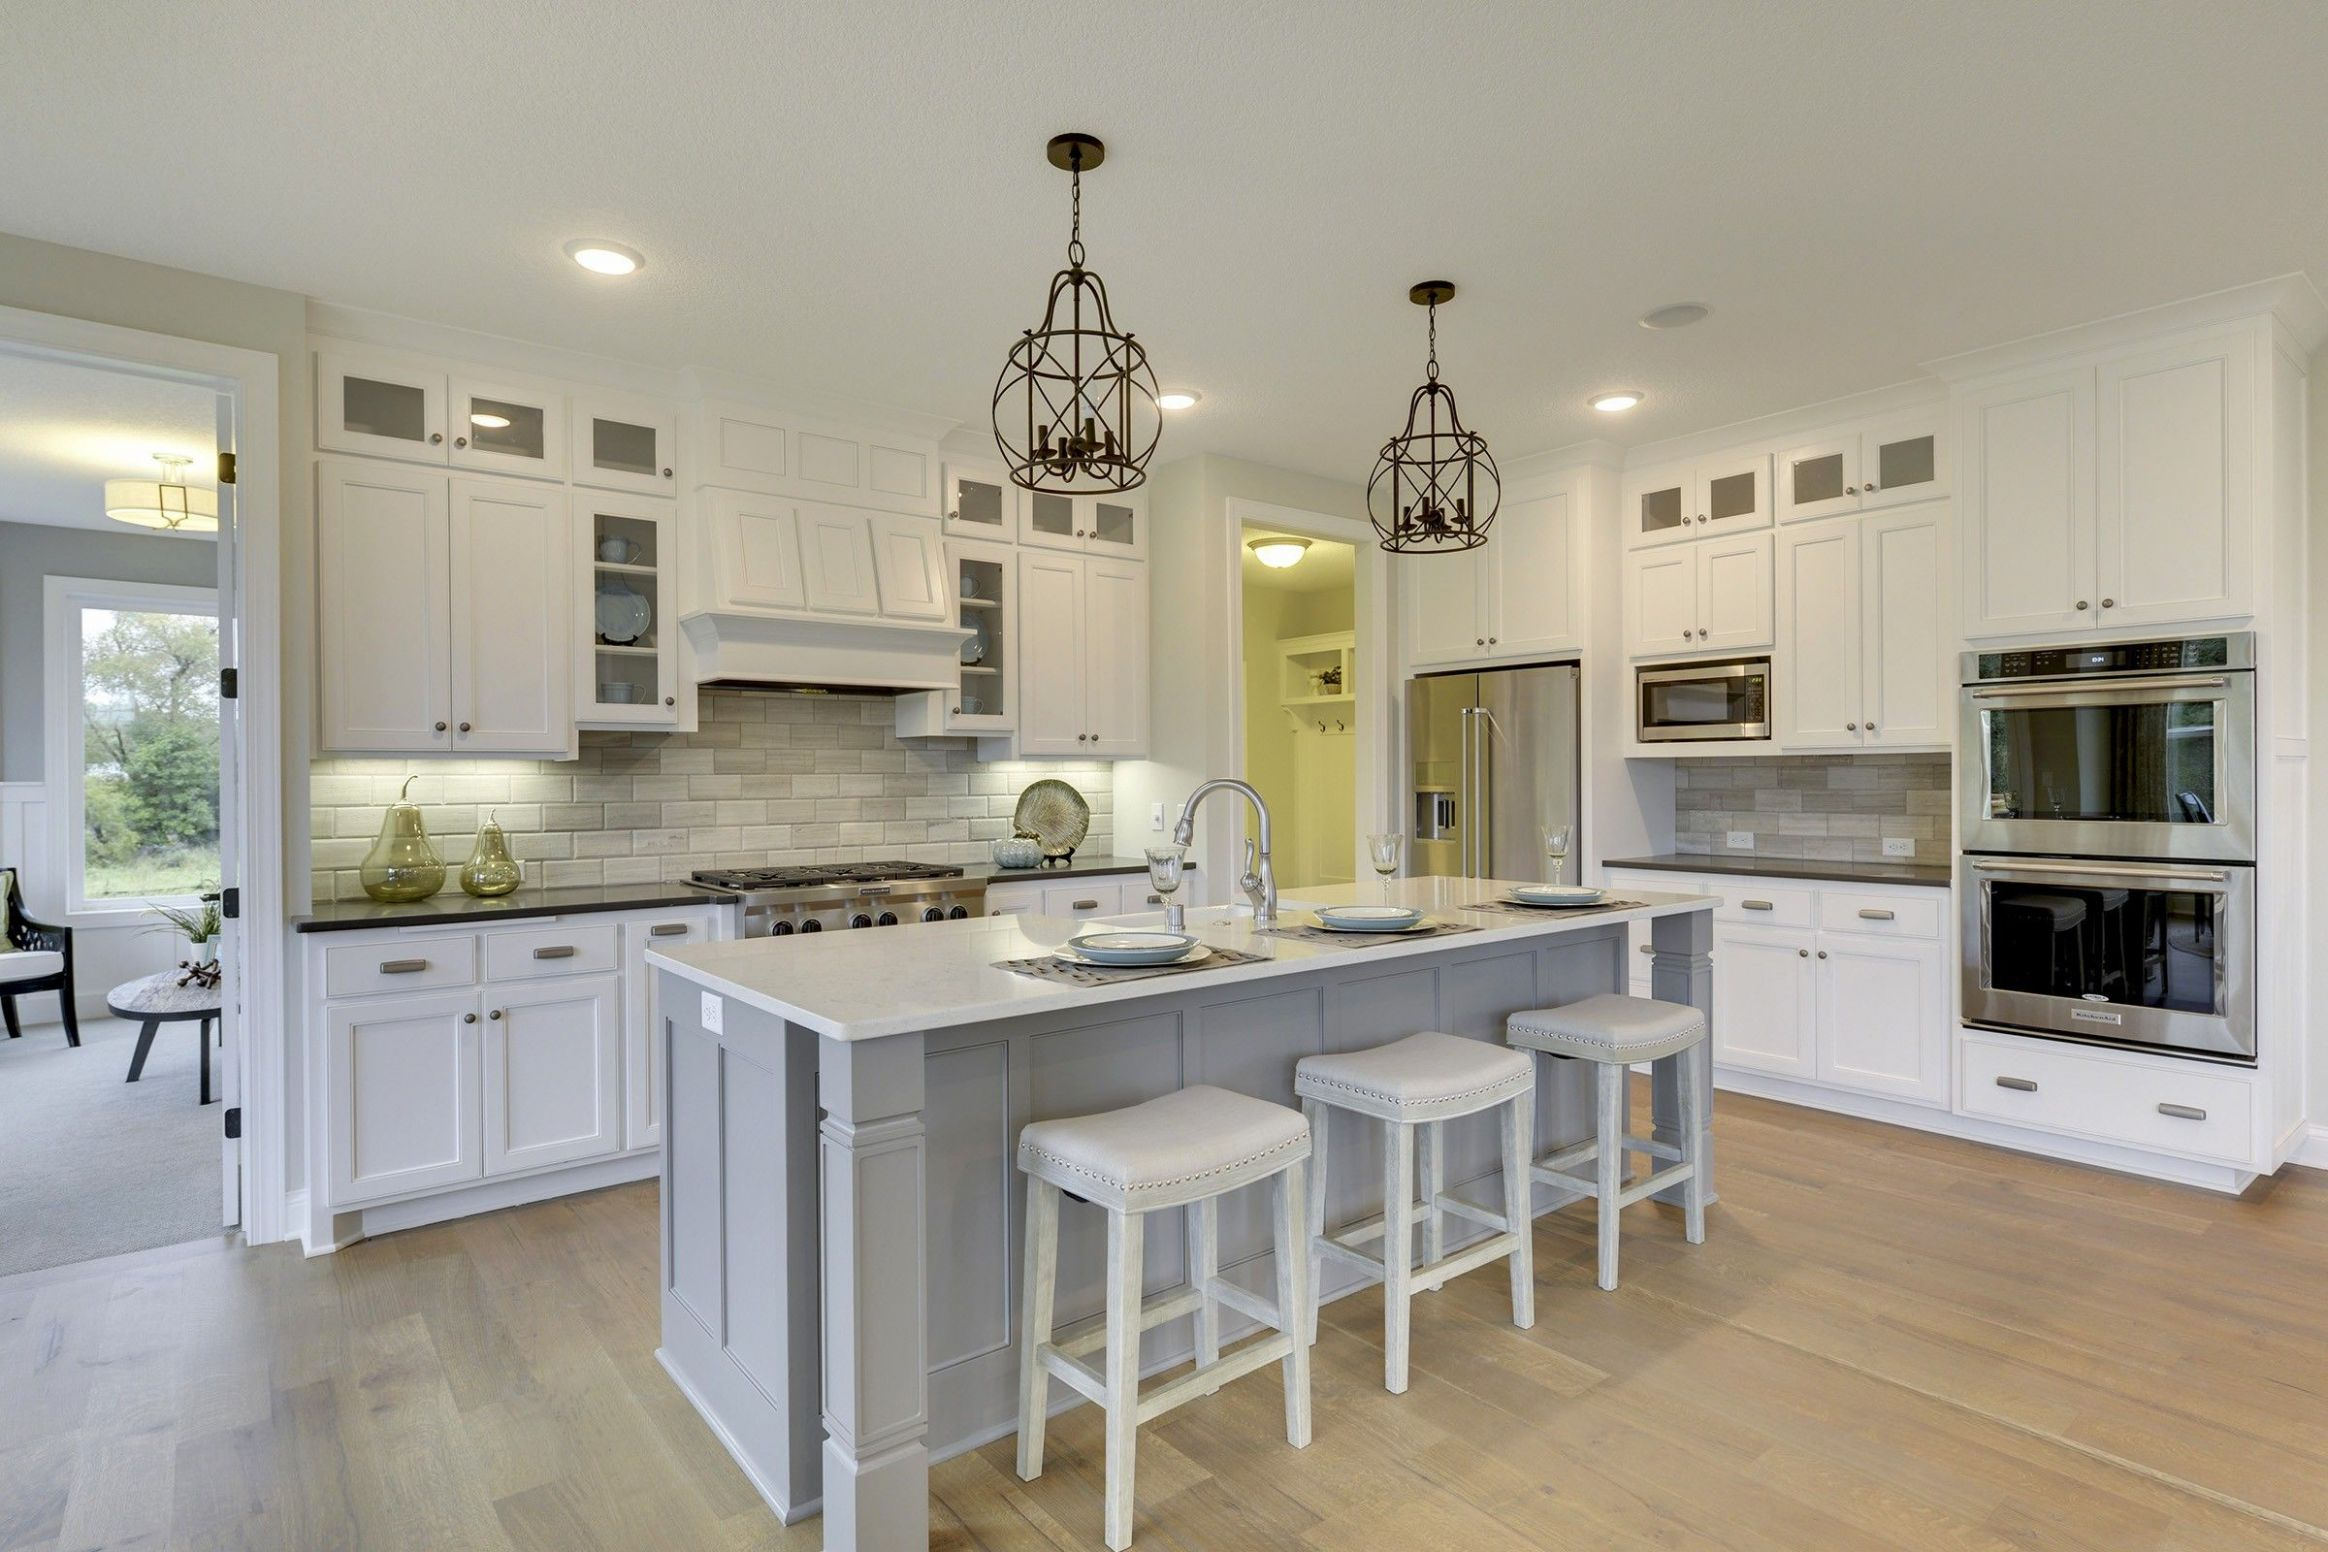 Home Design Trends to Watch For in 10 | Open concept kitchen ..